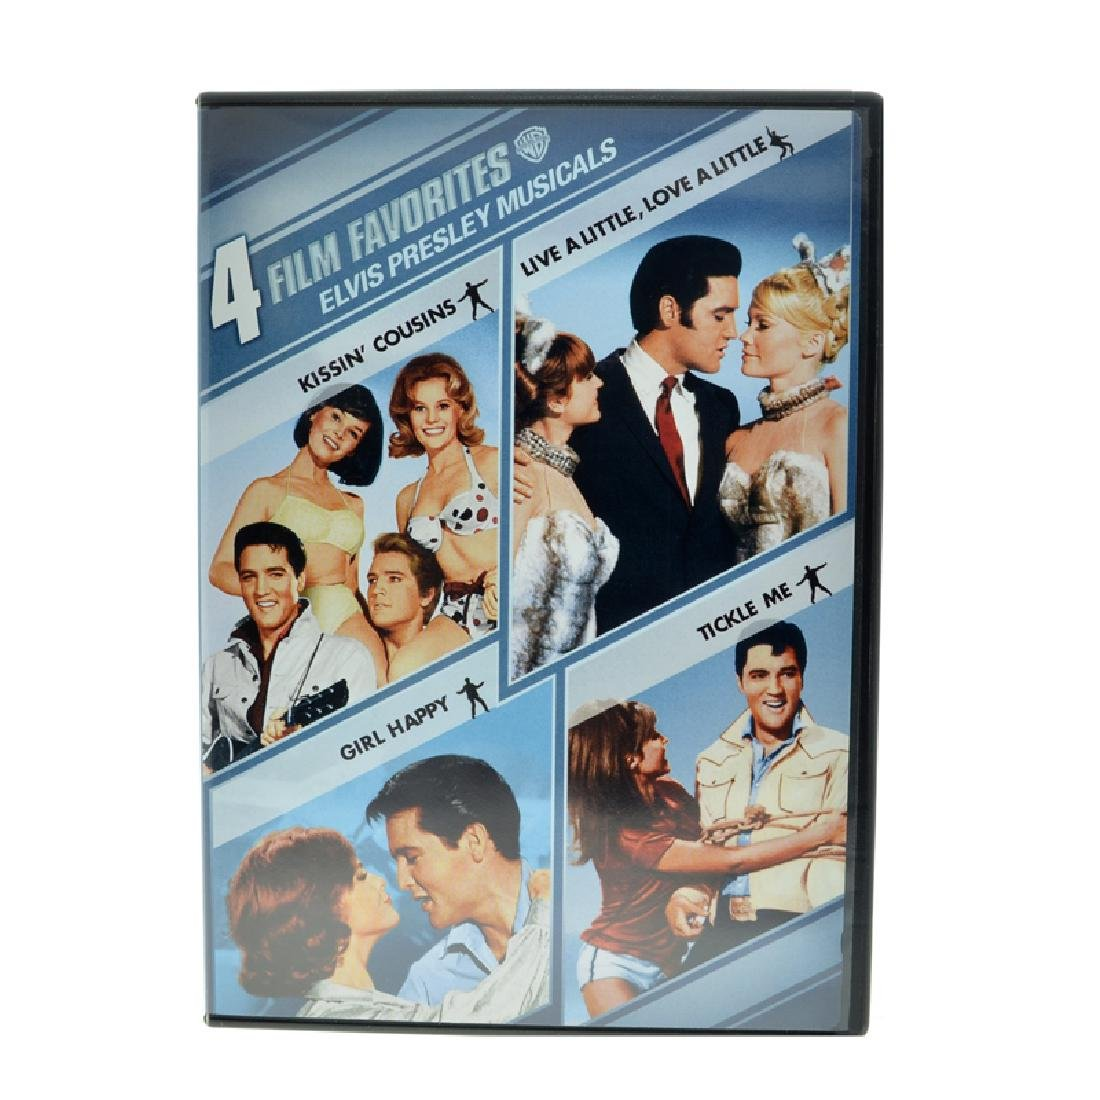 Elvis Presley Movie: 4 Film Of Elvis Musicals